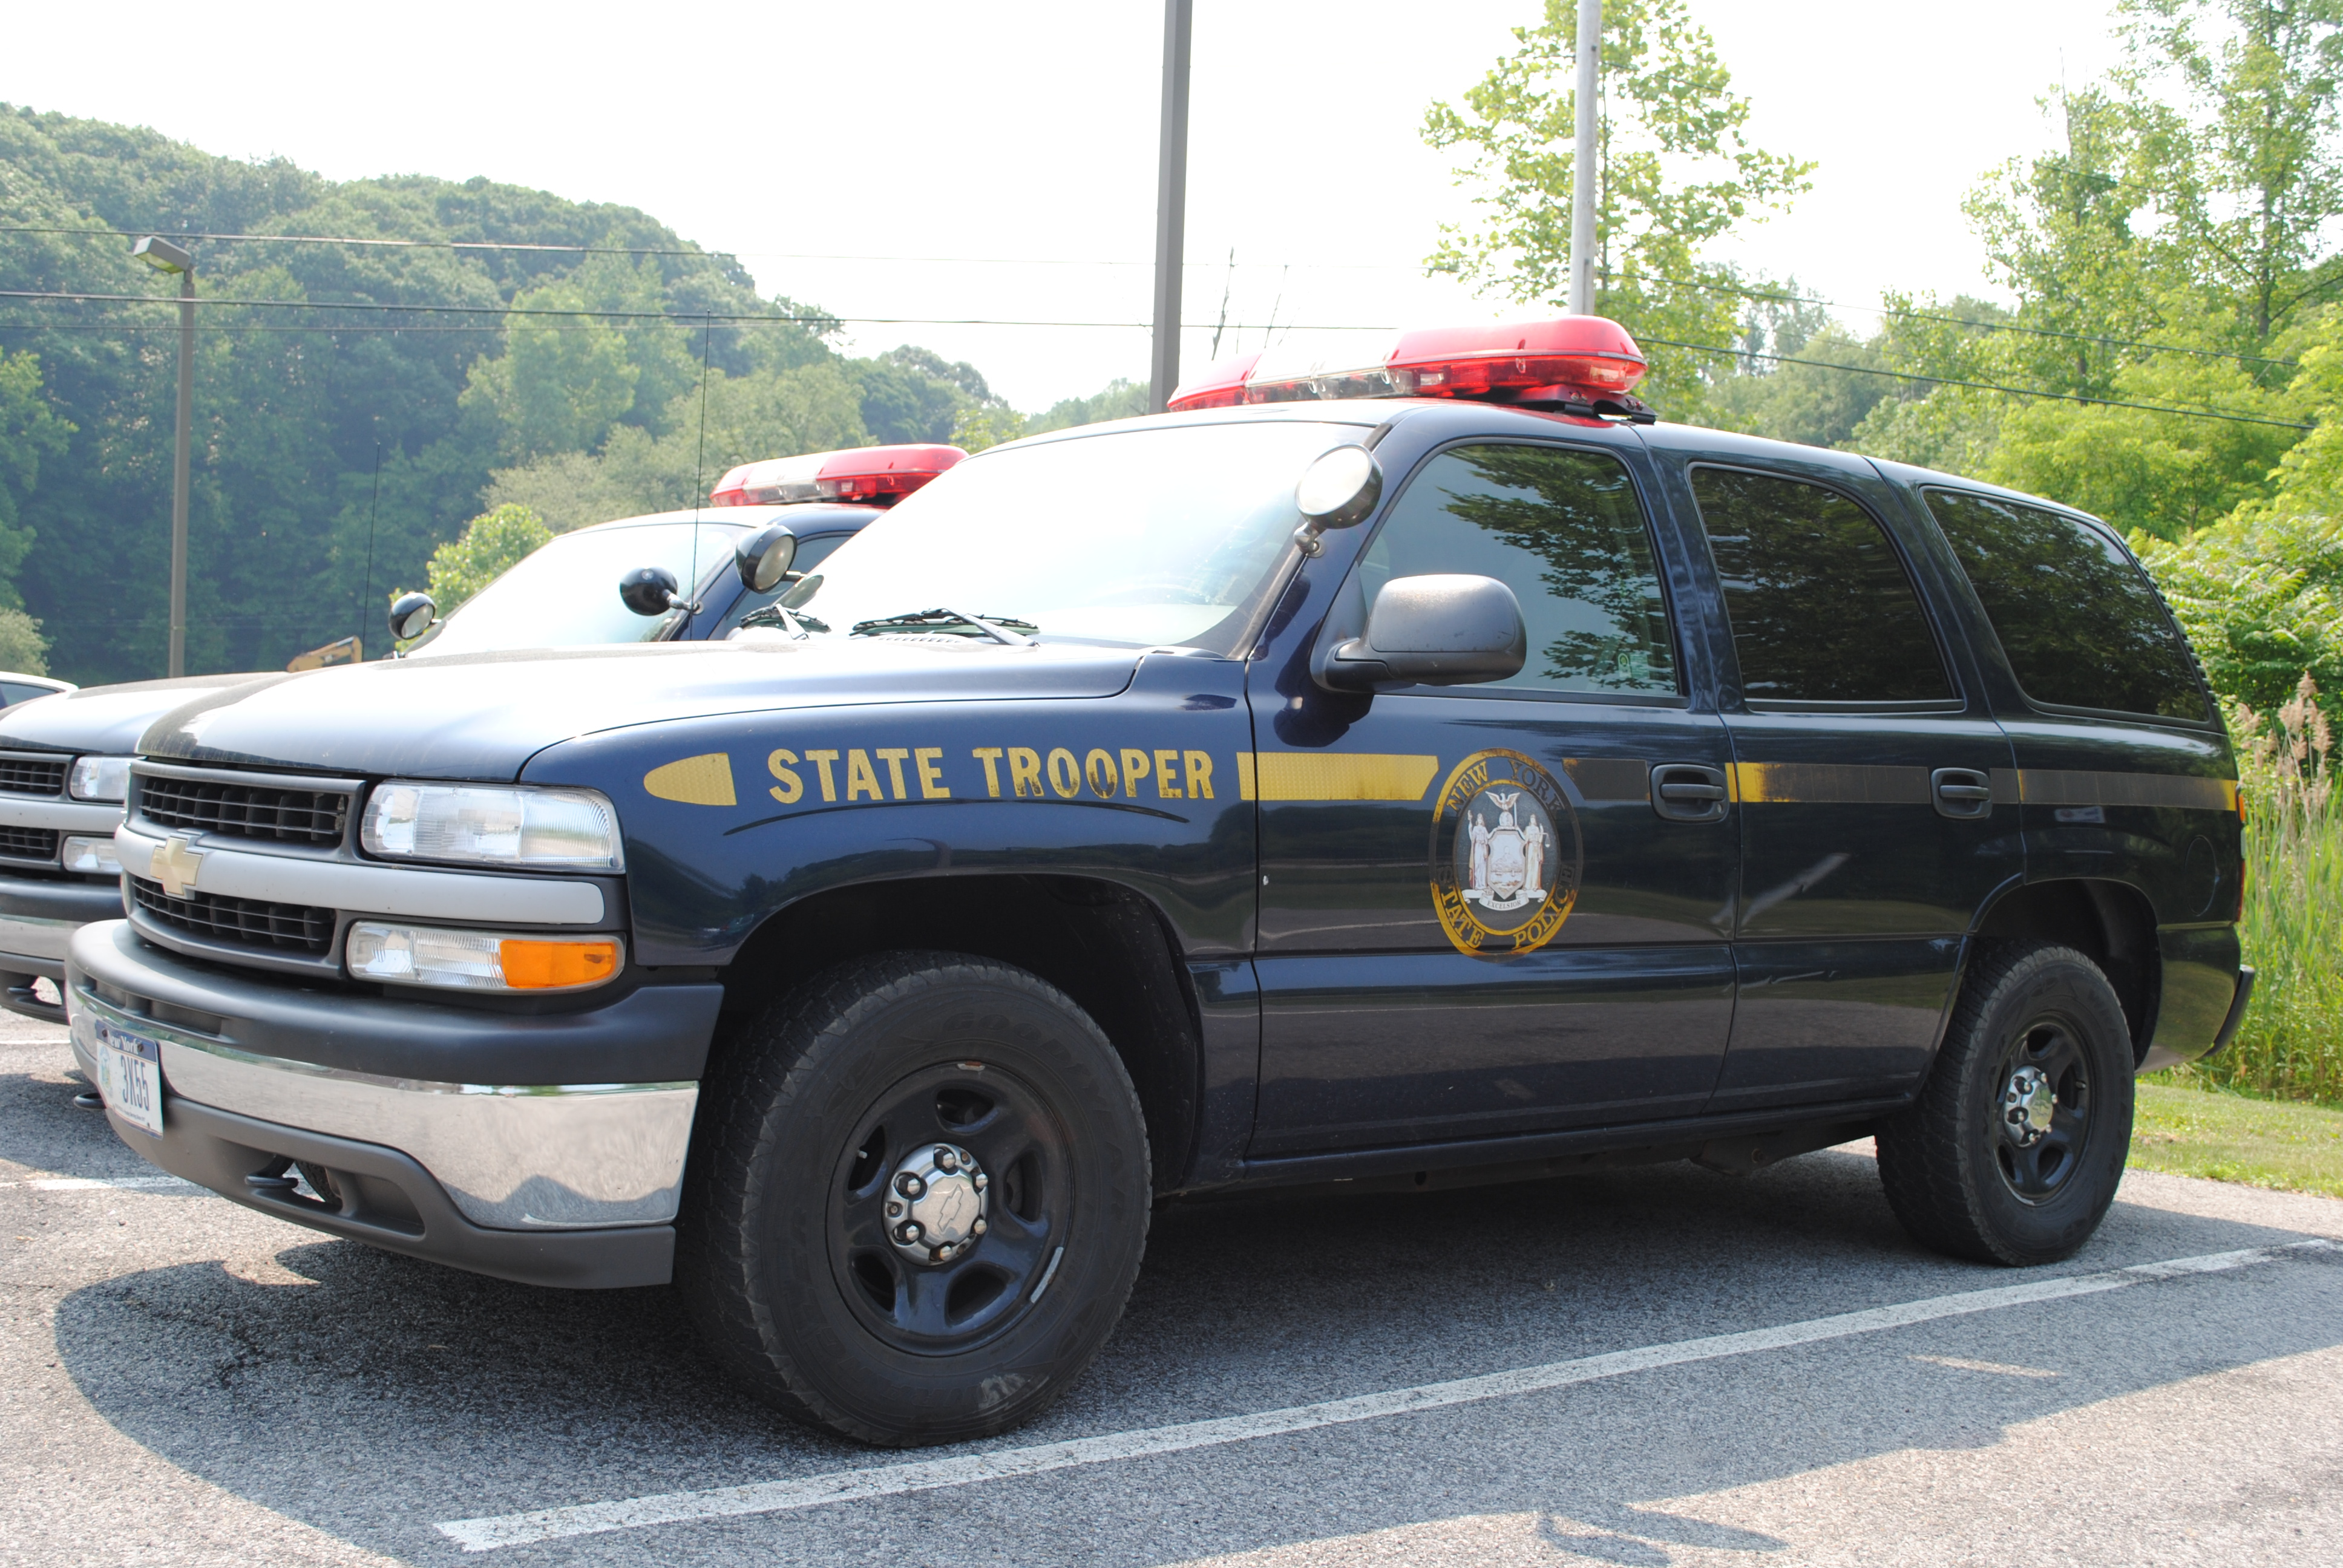 New York State Police arrested a Yorktown woman for driving while intoxicated on Saturday, Jan. 11.